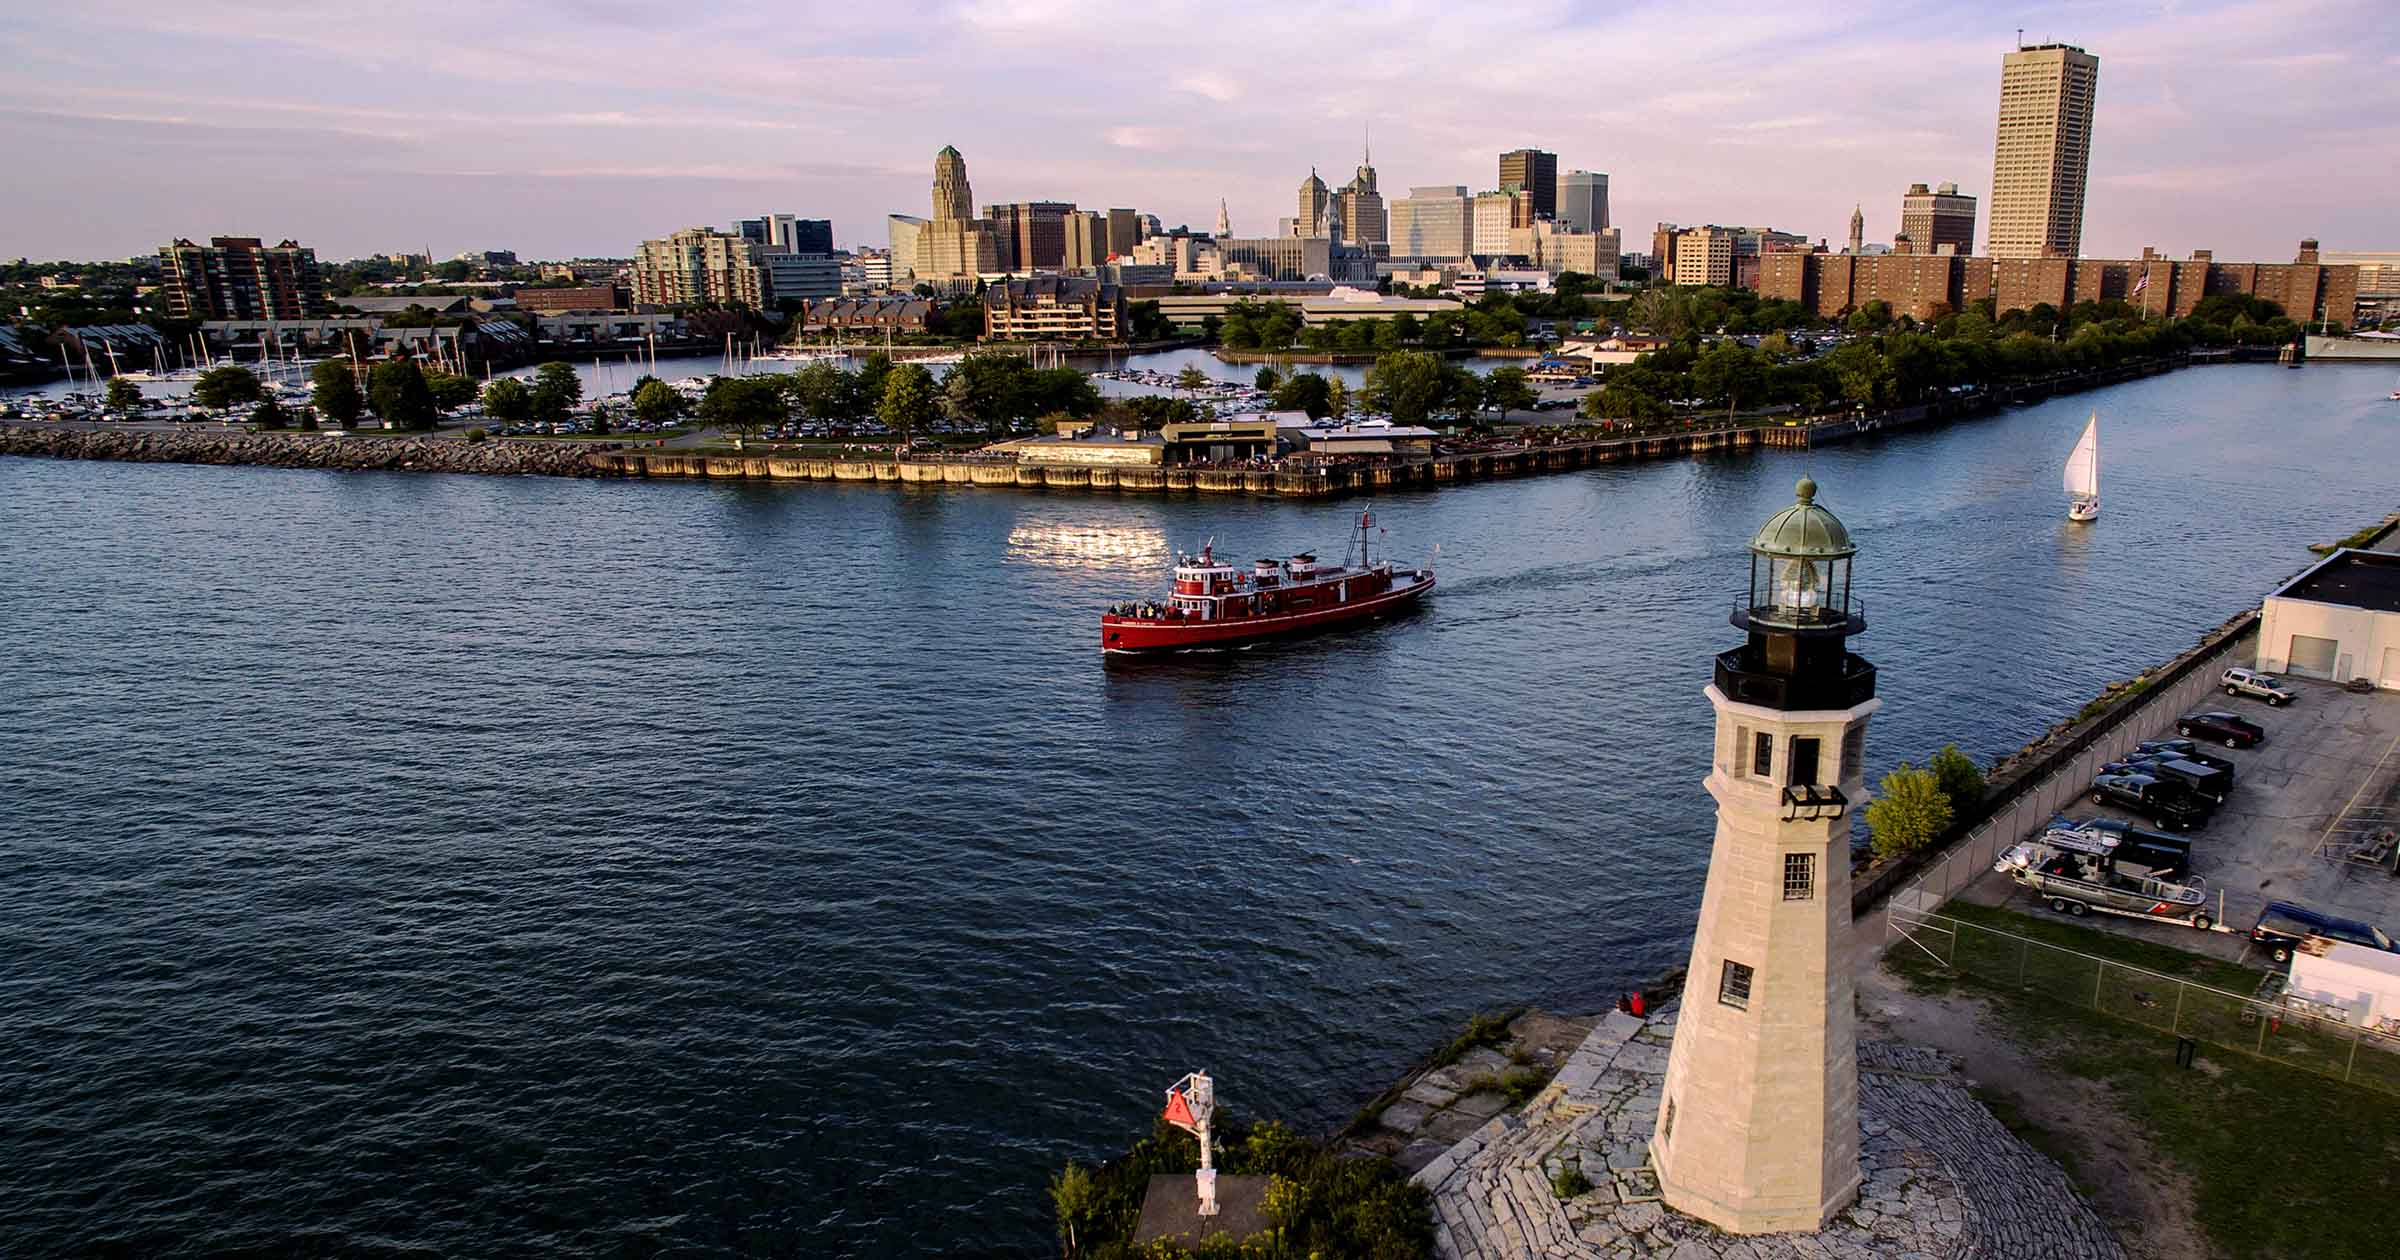 New york times names buffalo top spot to travel wnymedia for Best time to see new york